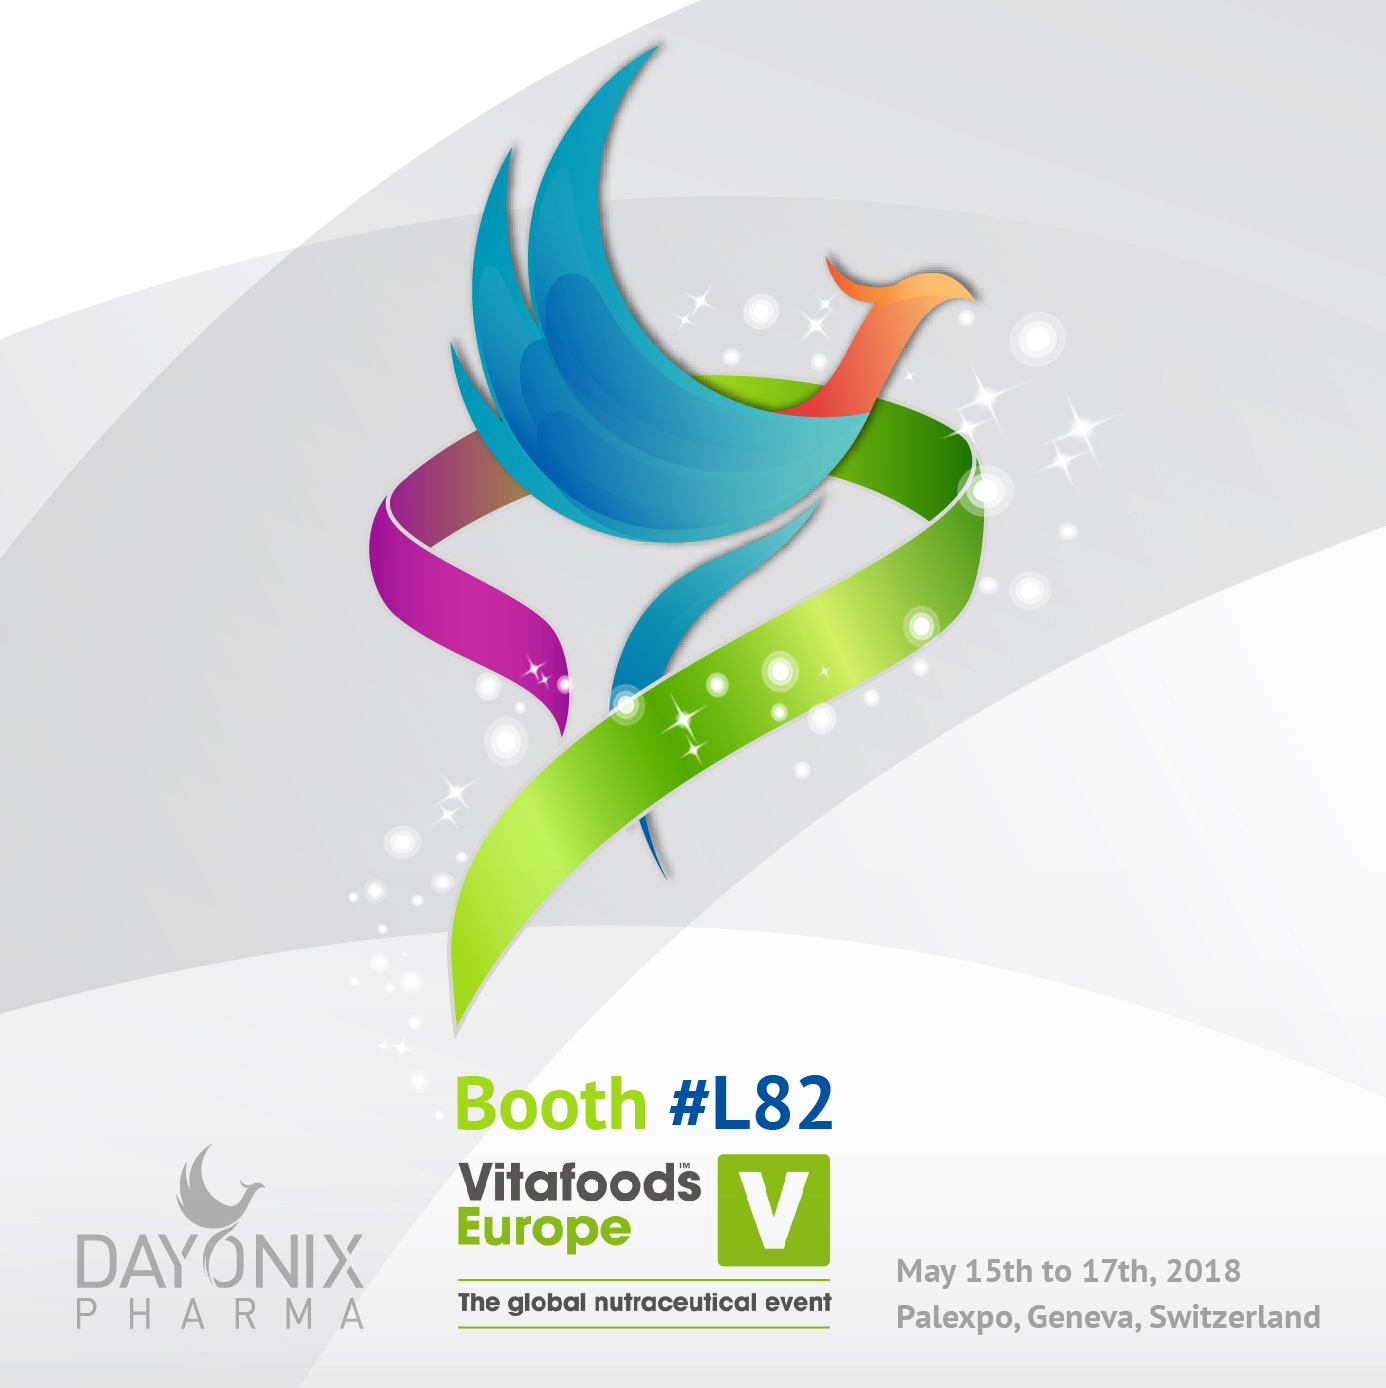 Vitafoods 2018 Is Coming! Join Us At L82